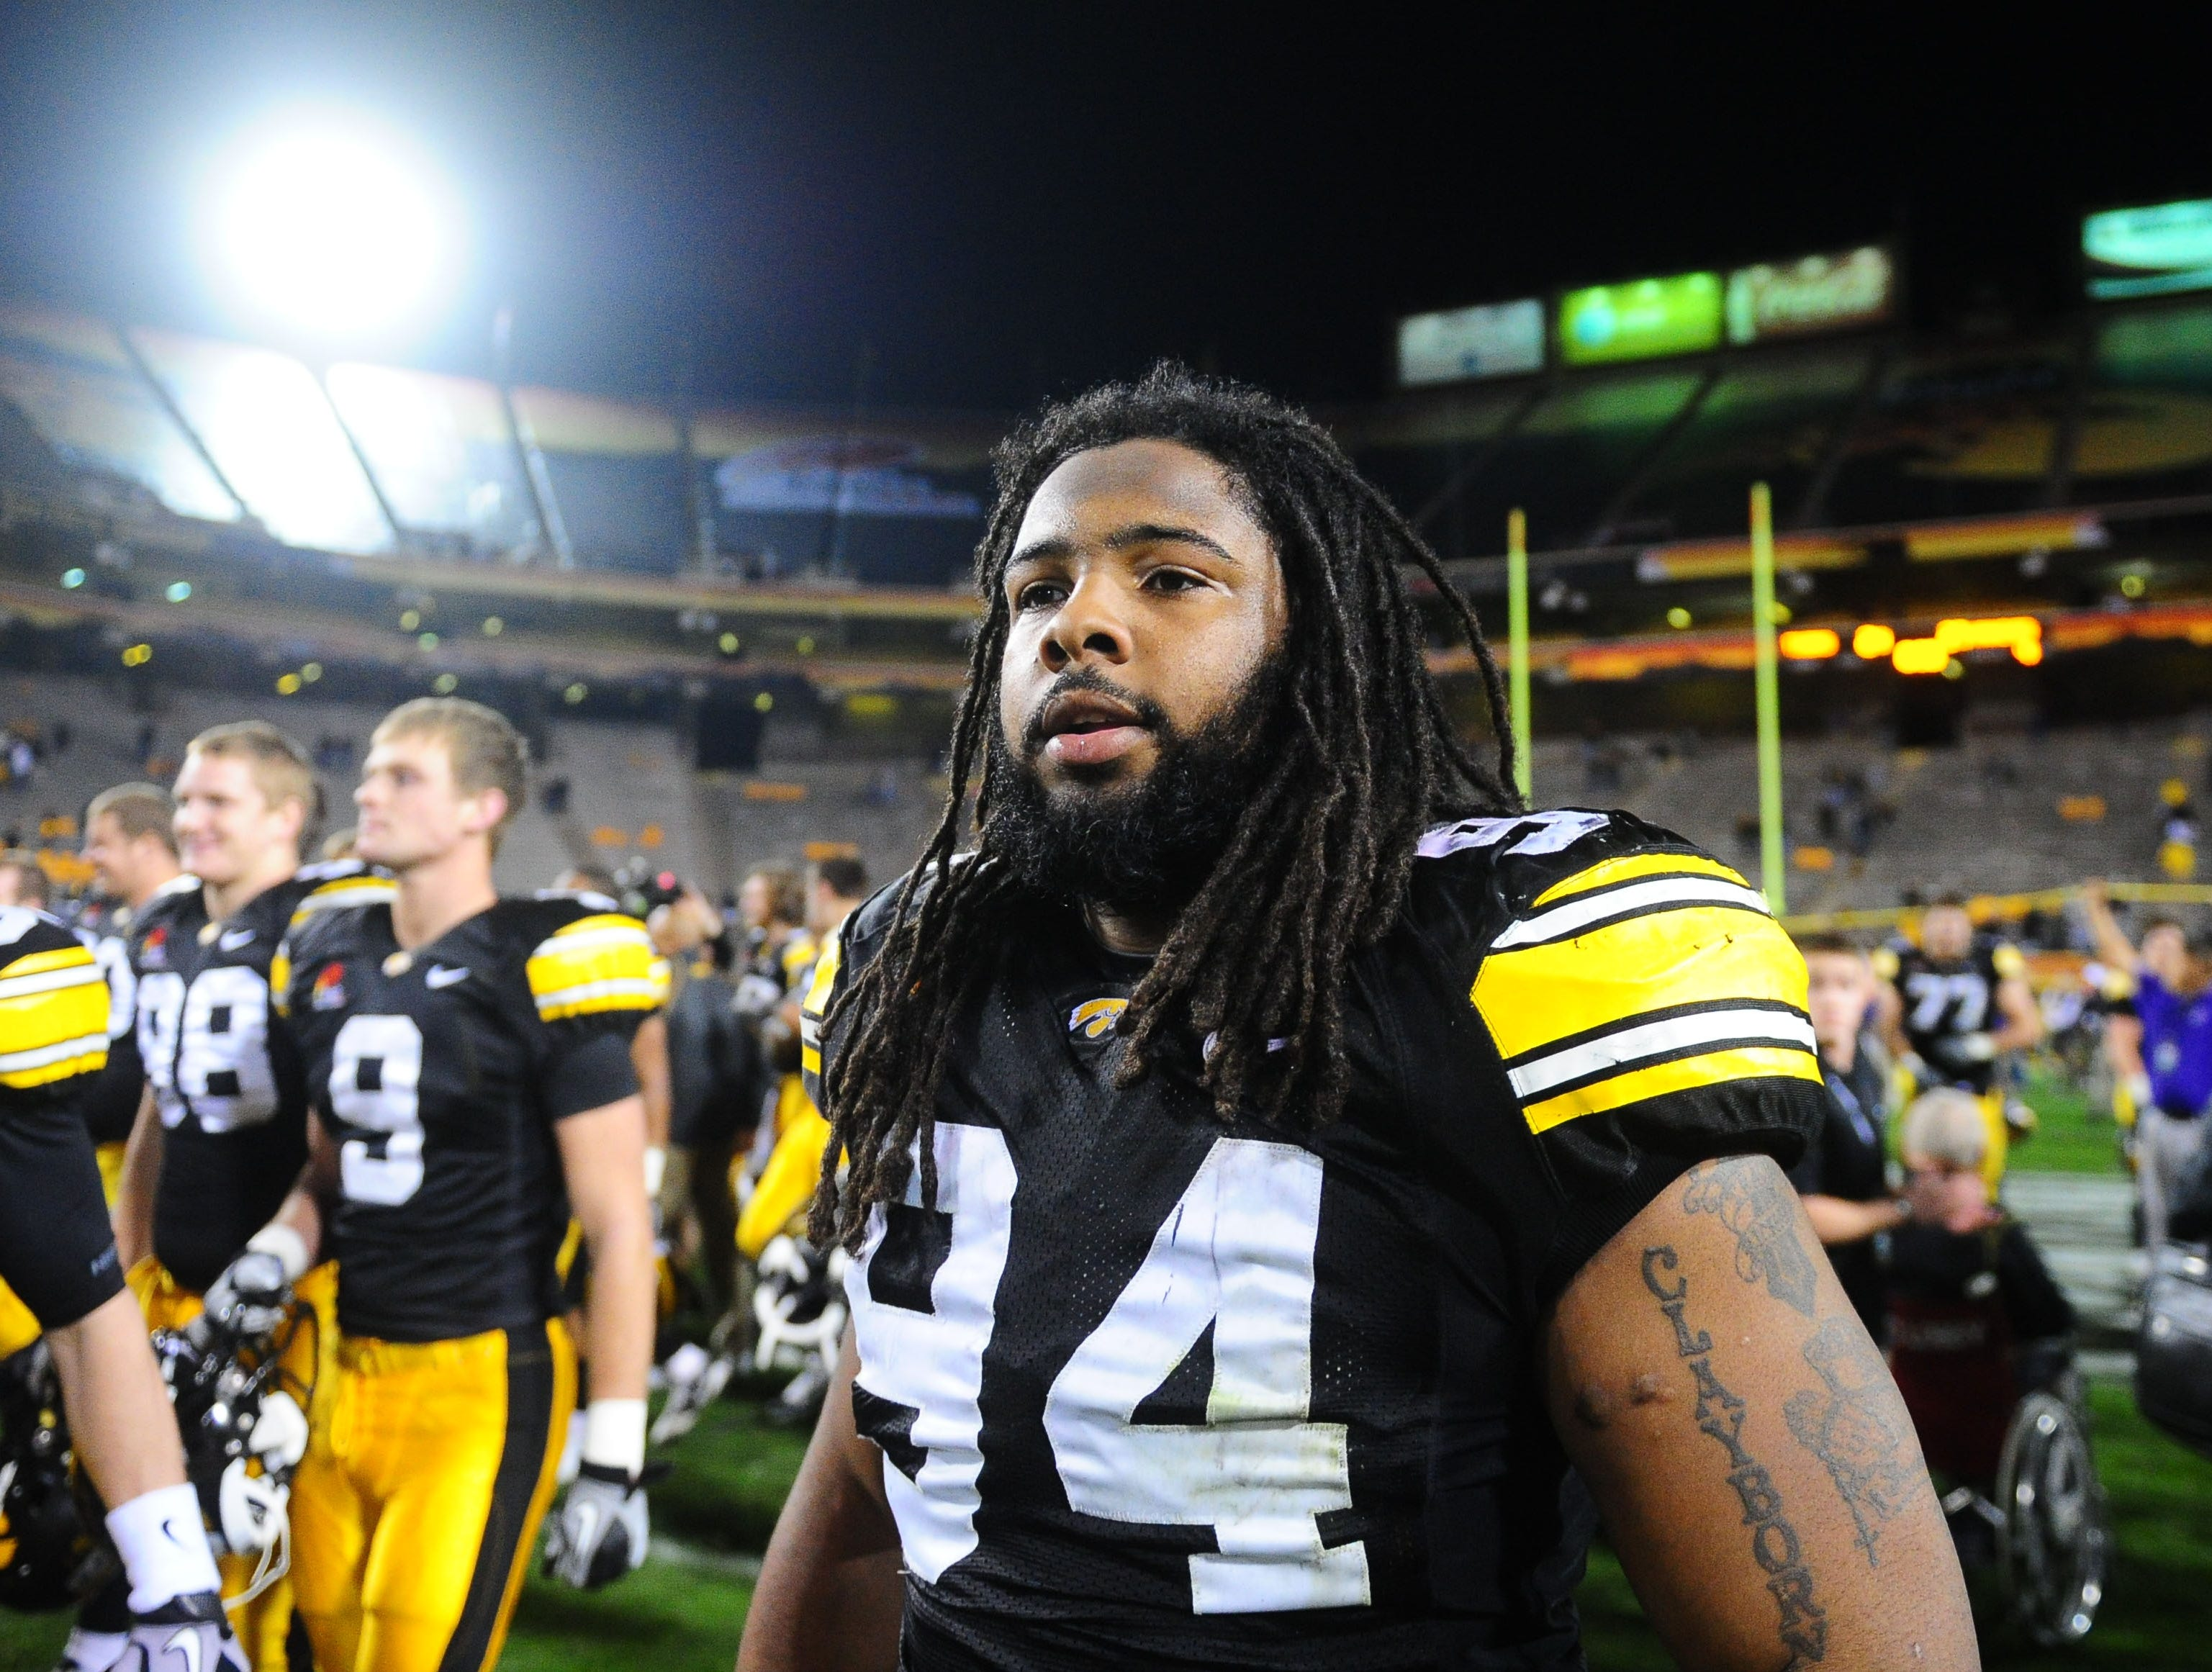 Dec. 28, 2010; Tempe, AZ, USA; Iowa Hawkeyes defensive lineman (94) Adrian Clayborn against the Missouri Tigers in the 2010 Insight Bowl at Sun Devil Stadium. Iowa defeated Missouri 27-24. Mandatory Credit: Mark J. Rebilas-USA TODAY Sports